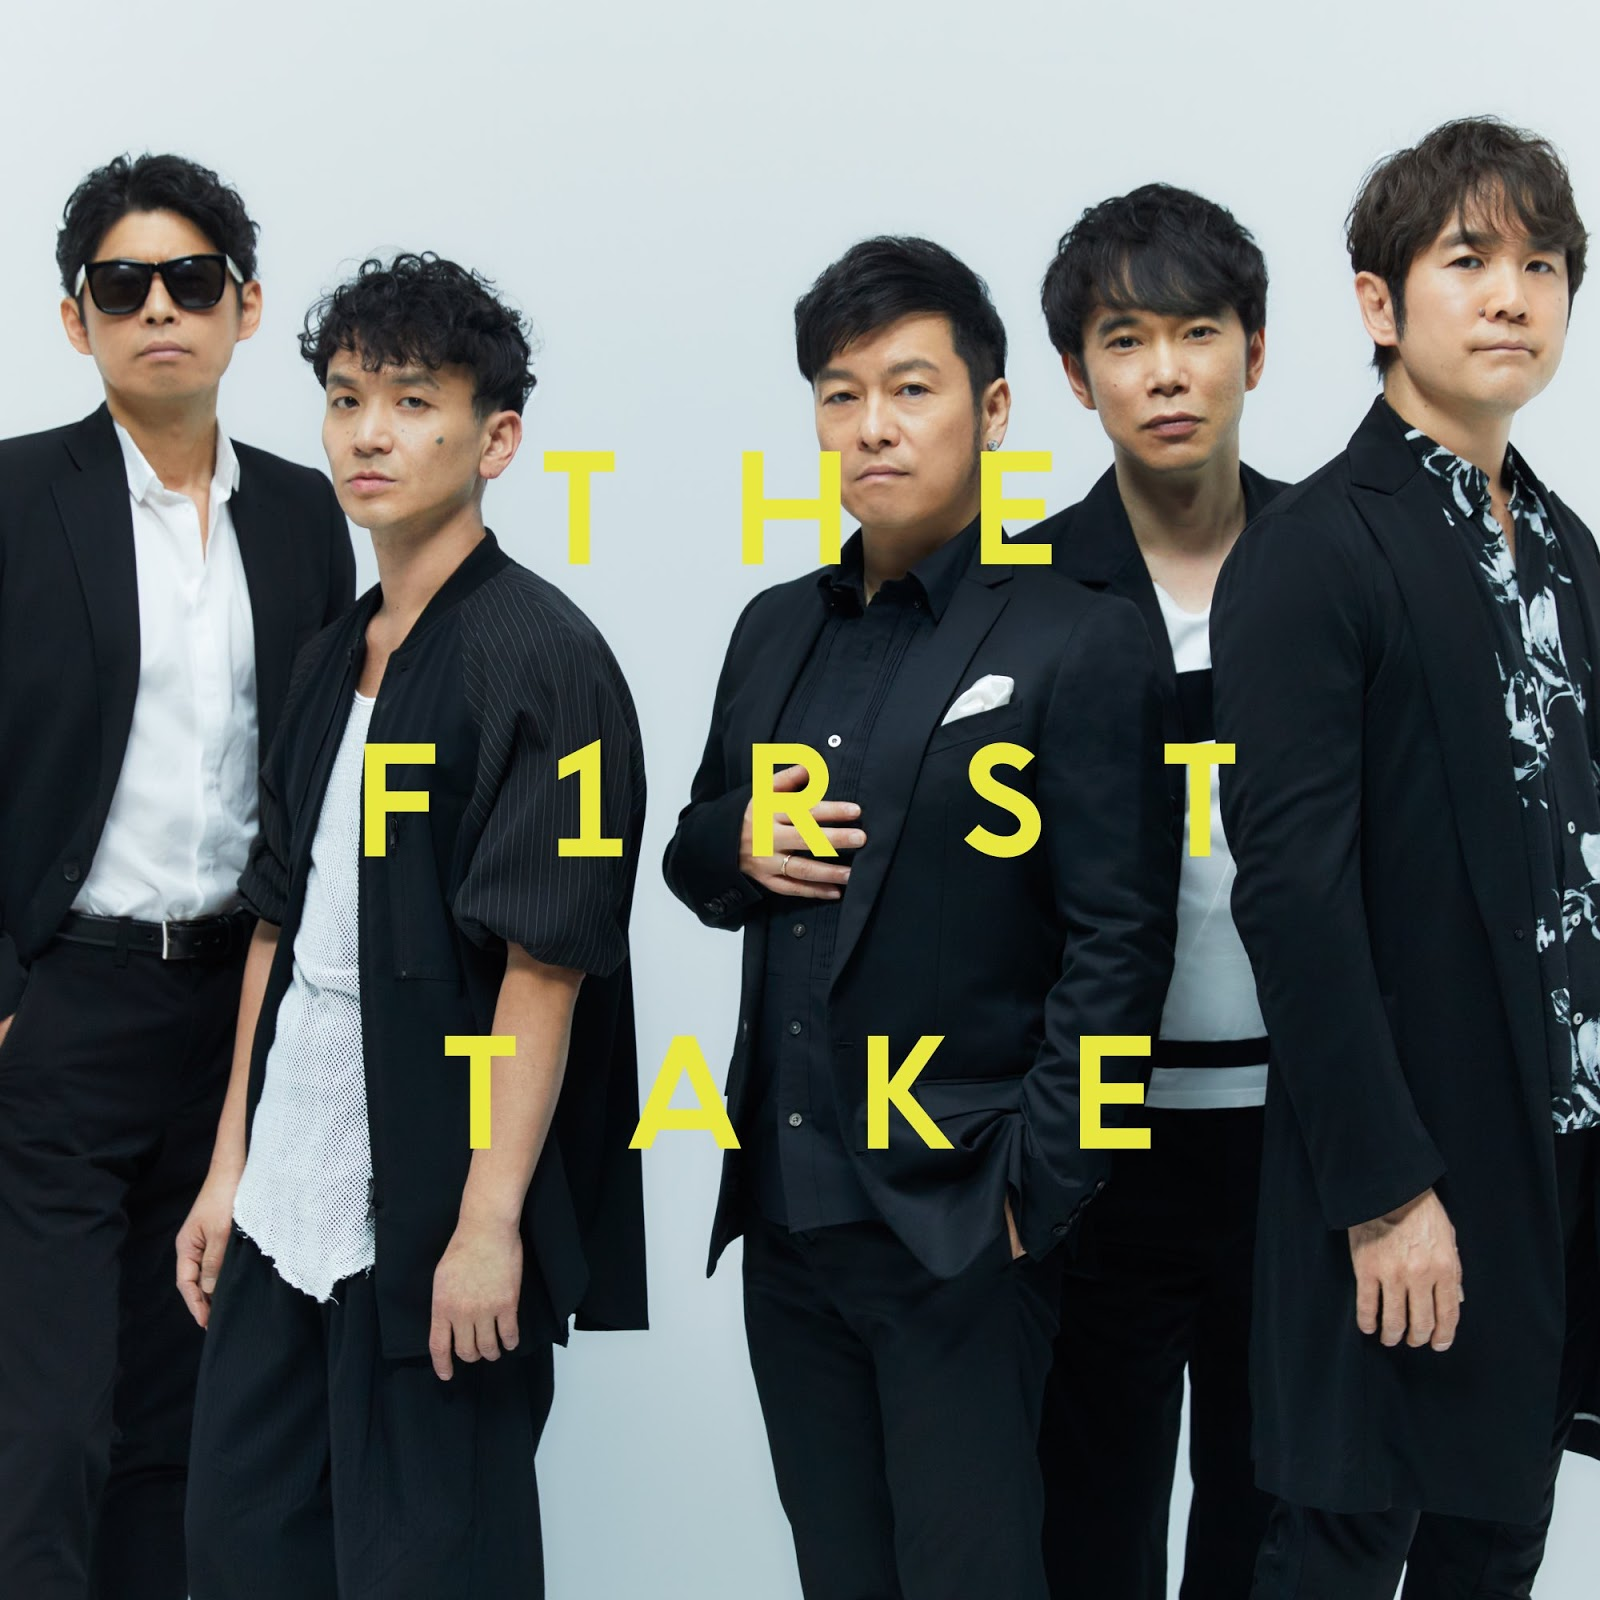 ゴスペラーズ - VOXers From THE FIRST TAKE [2020.07.31+MP3+RAR]